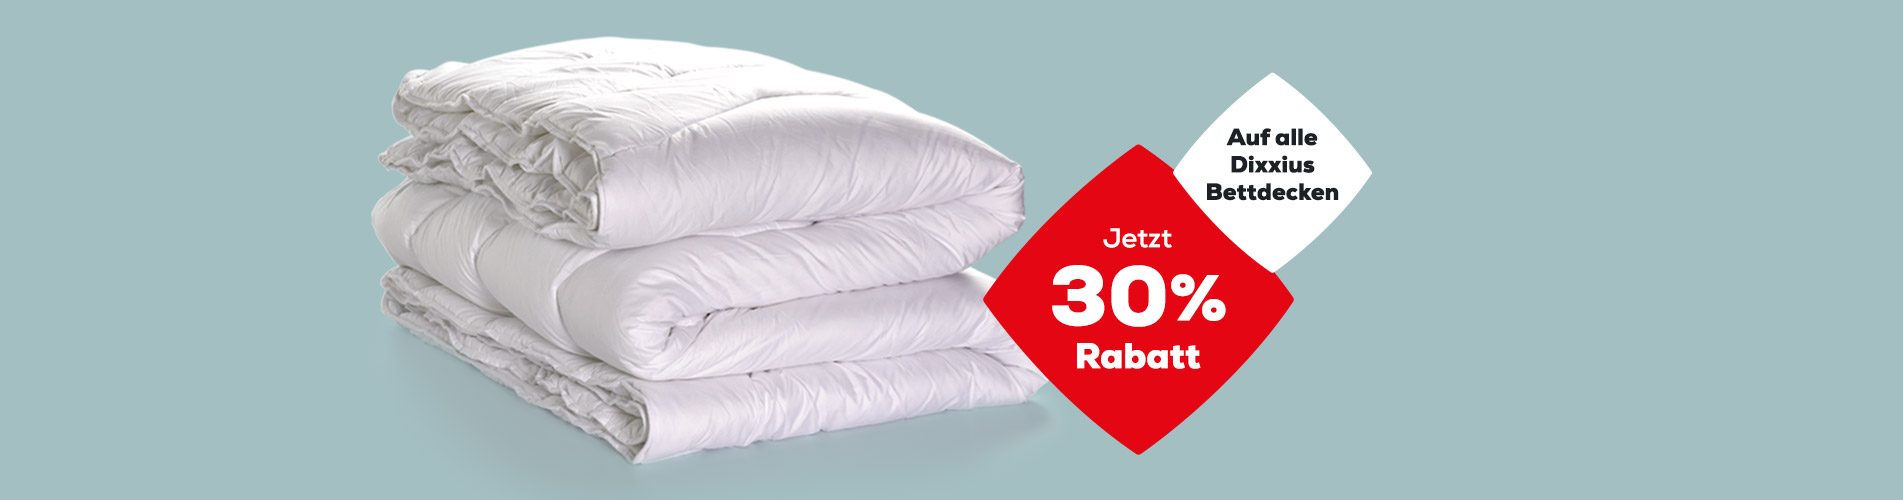 Dixxius Bettdecken 30% Rabatt | Swiss Sense